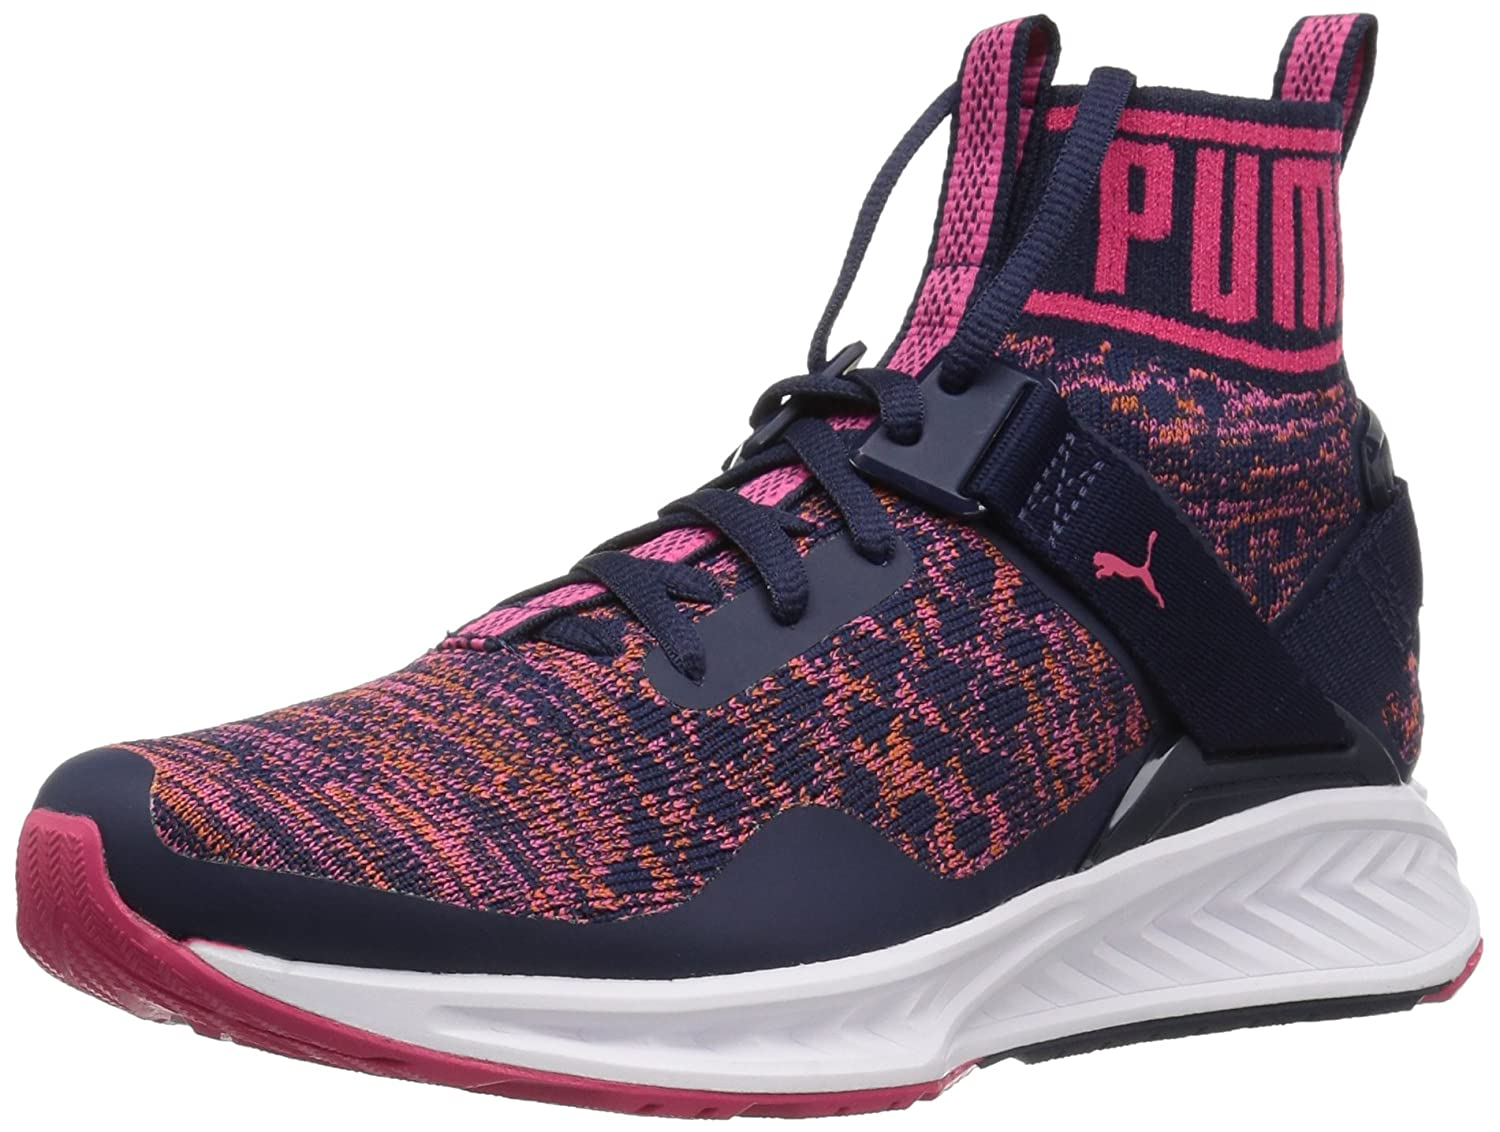 PUMA Women's Ignite Evoknit WN's Cross-Trainer Shoe B01M0AI35T 11 M US|Peacoat-sparkling Co